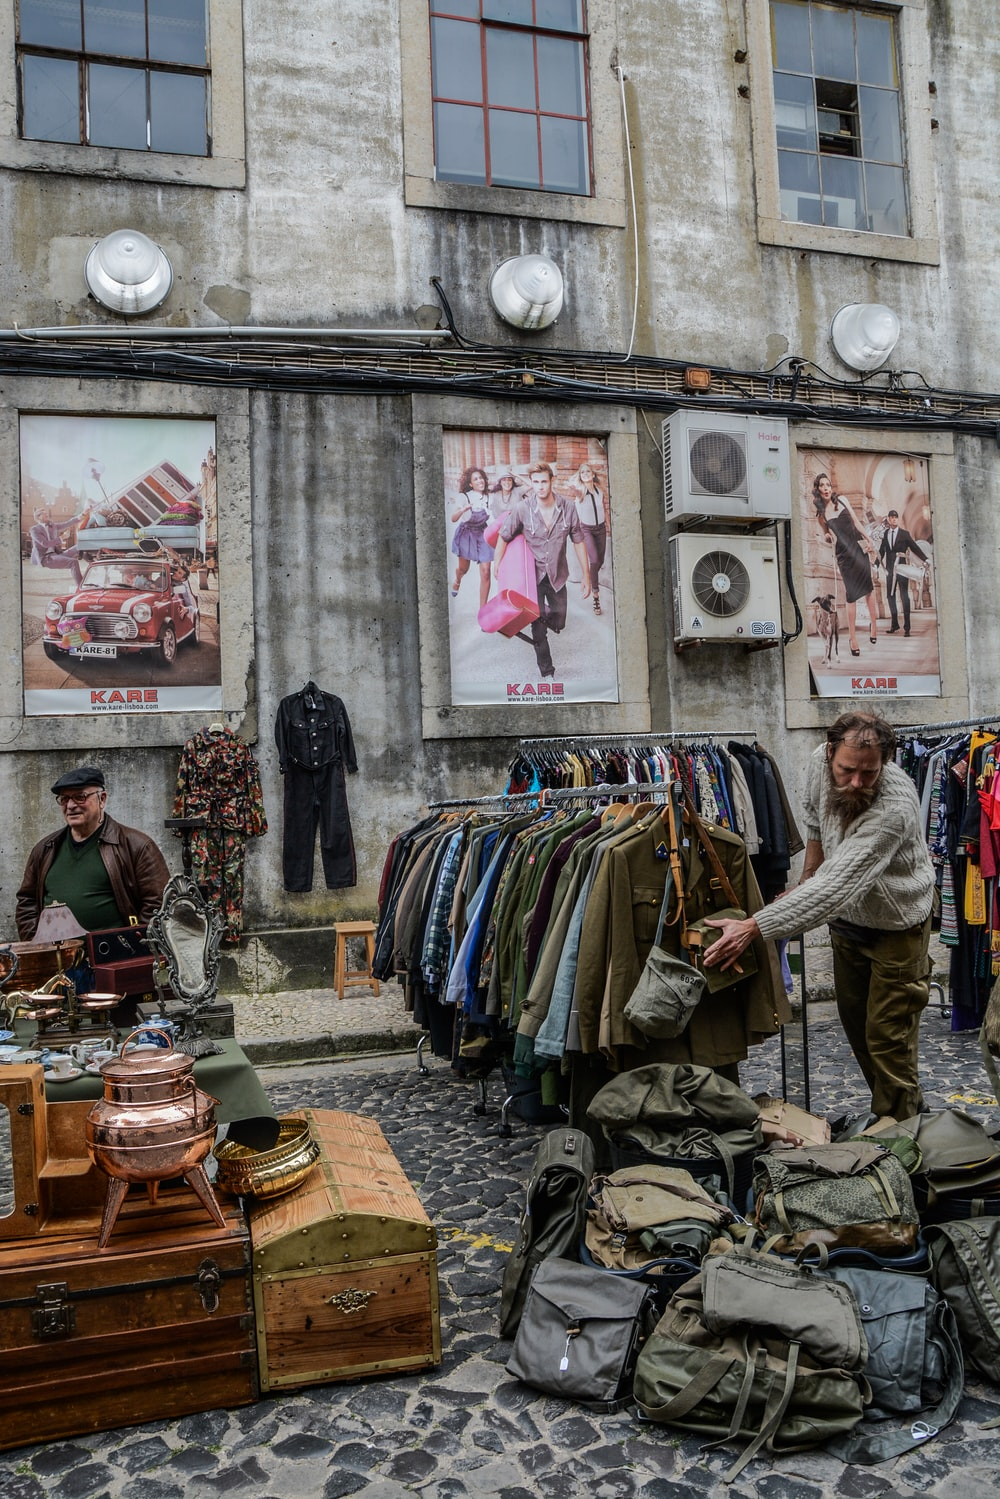 clothes and bags displayed on road near building during daytime